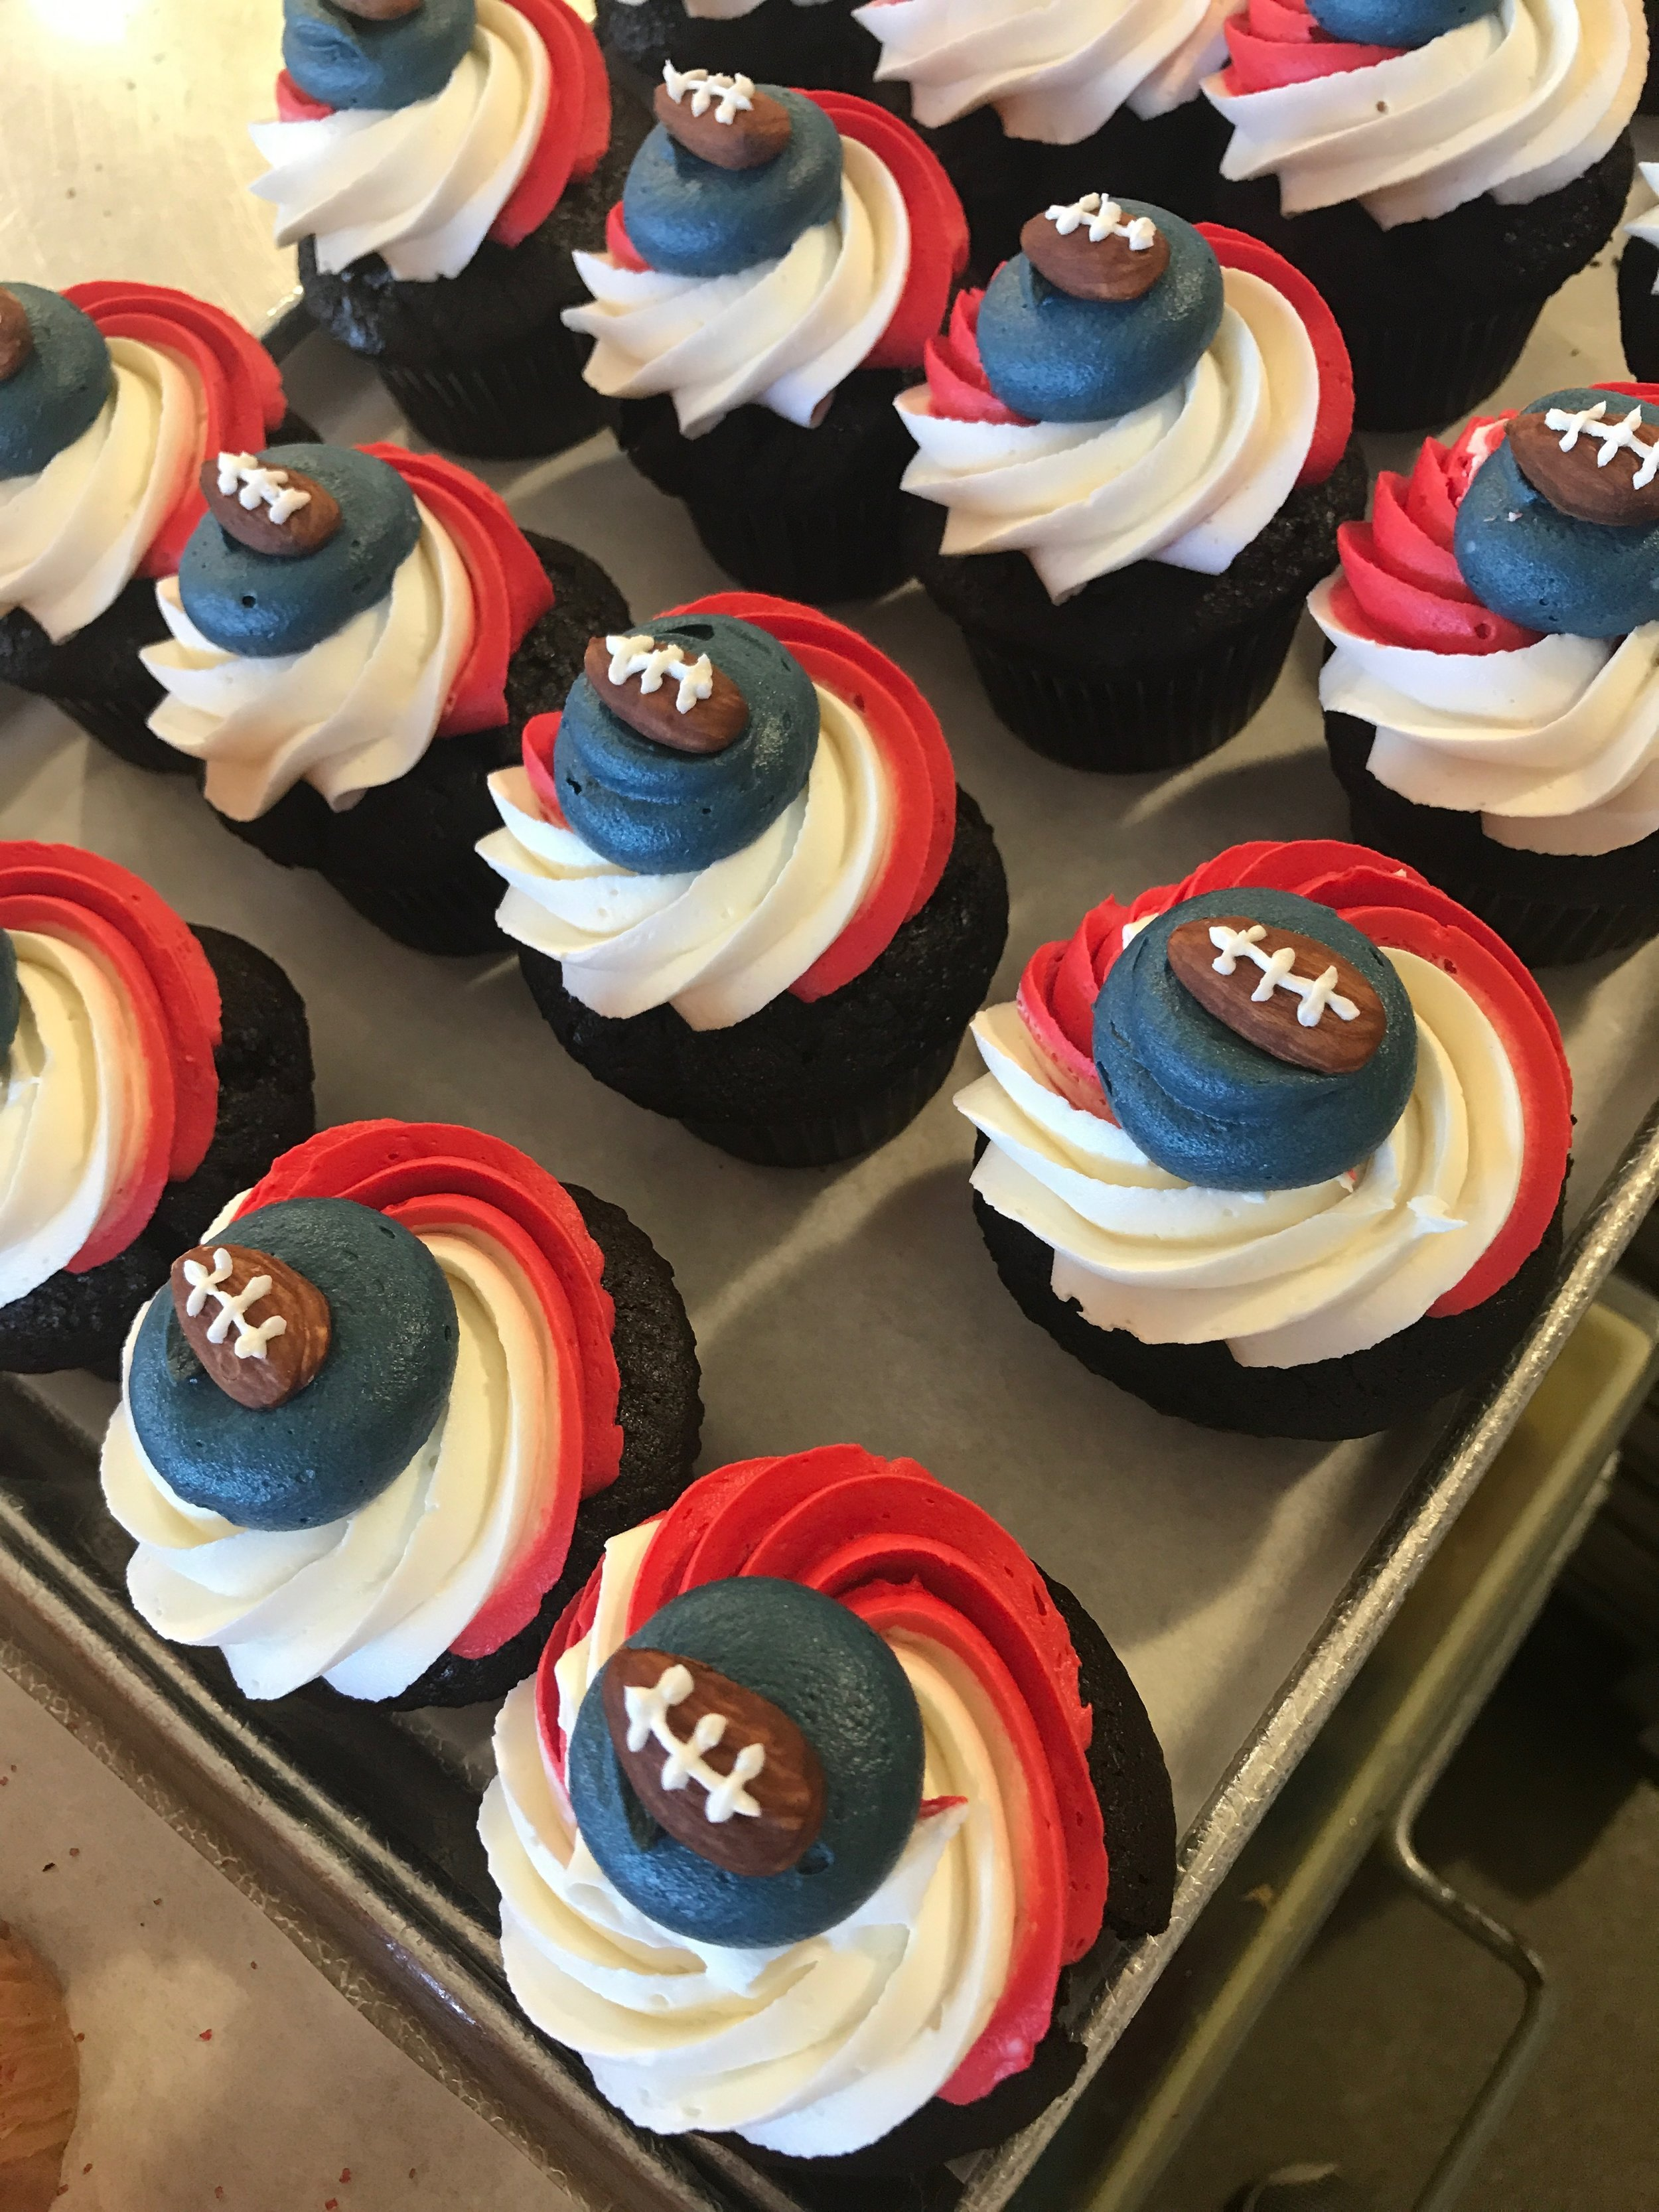 Go Patriots! Order your special playoffs cupcakes today! Call our bakery (617) 923-1500.